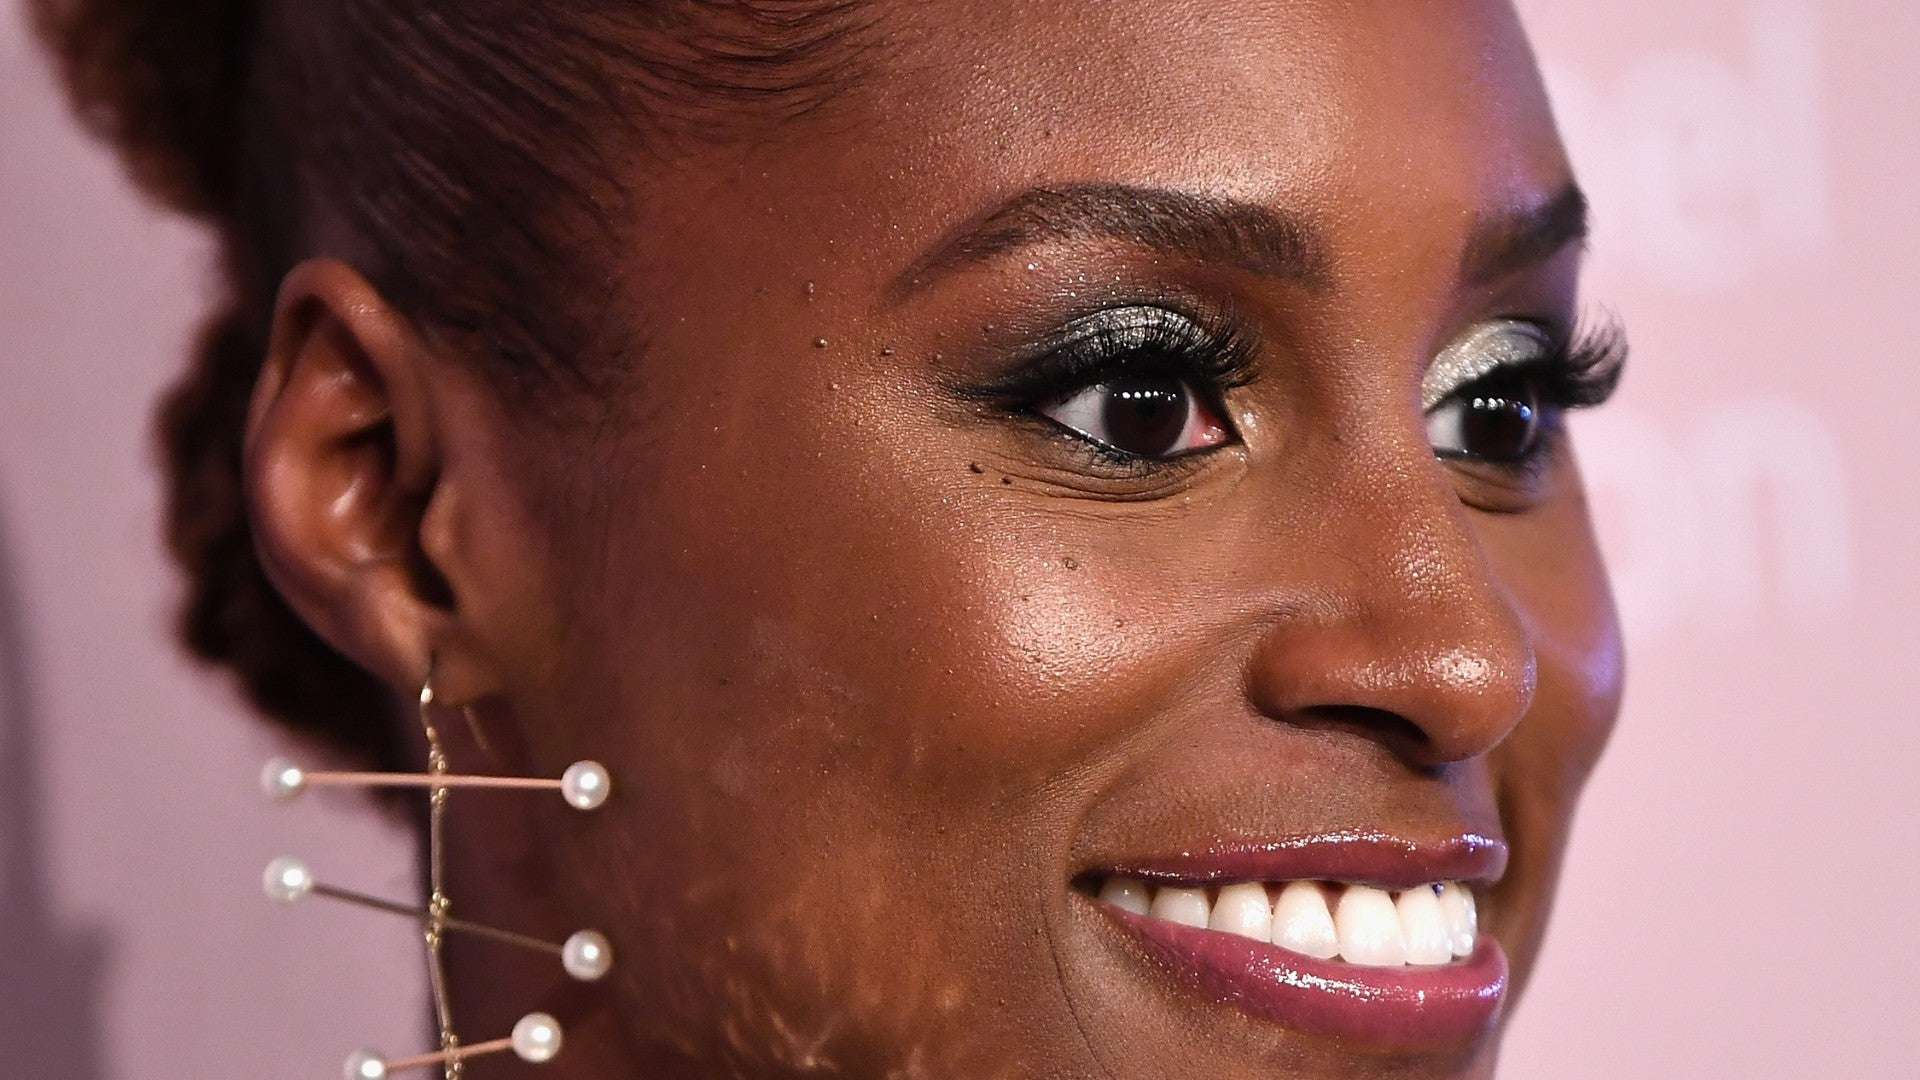 7 Highlighters That Don't Look Ashy On Dark Skin Tones